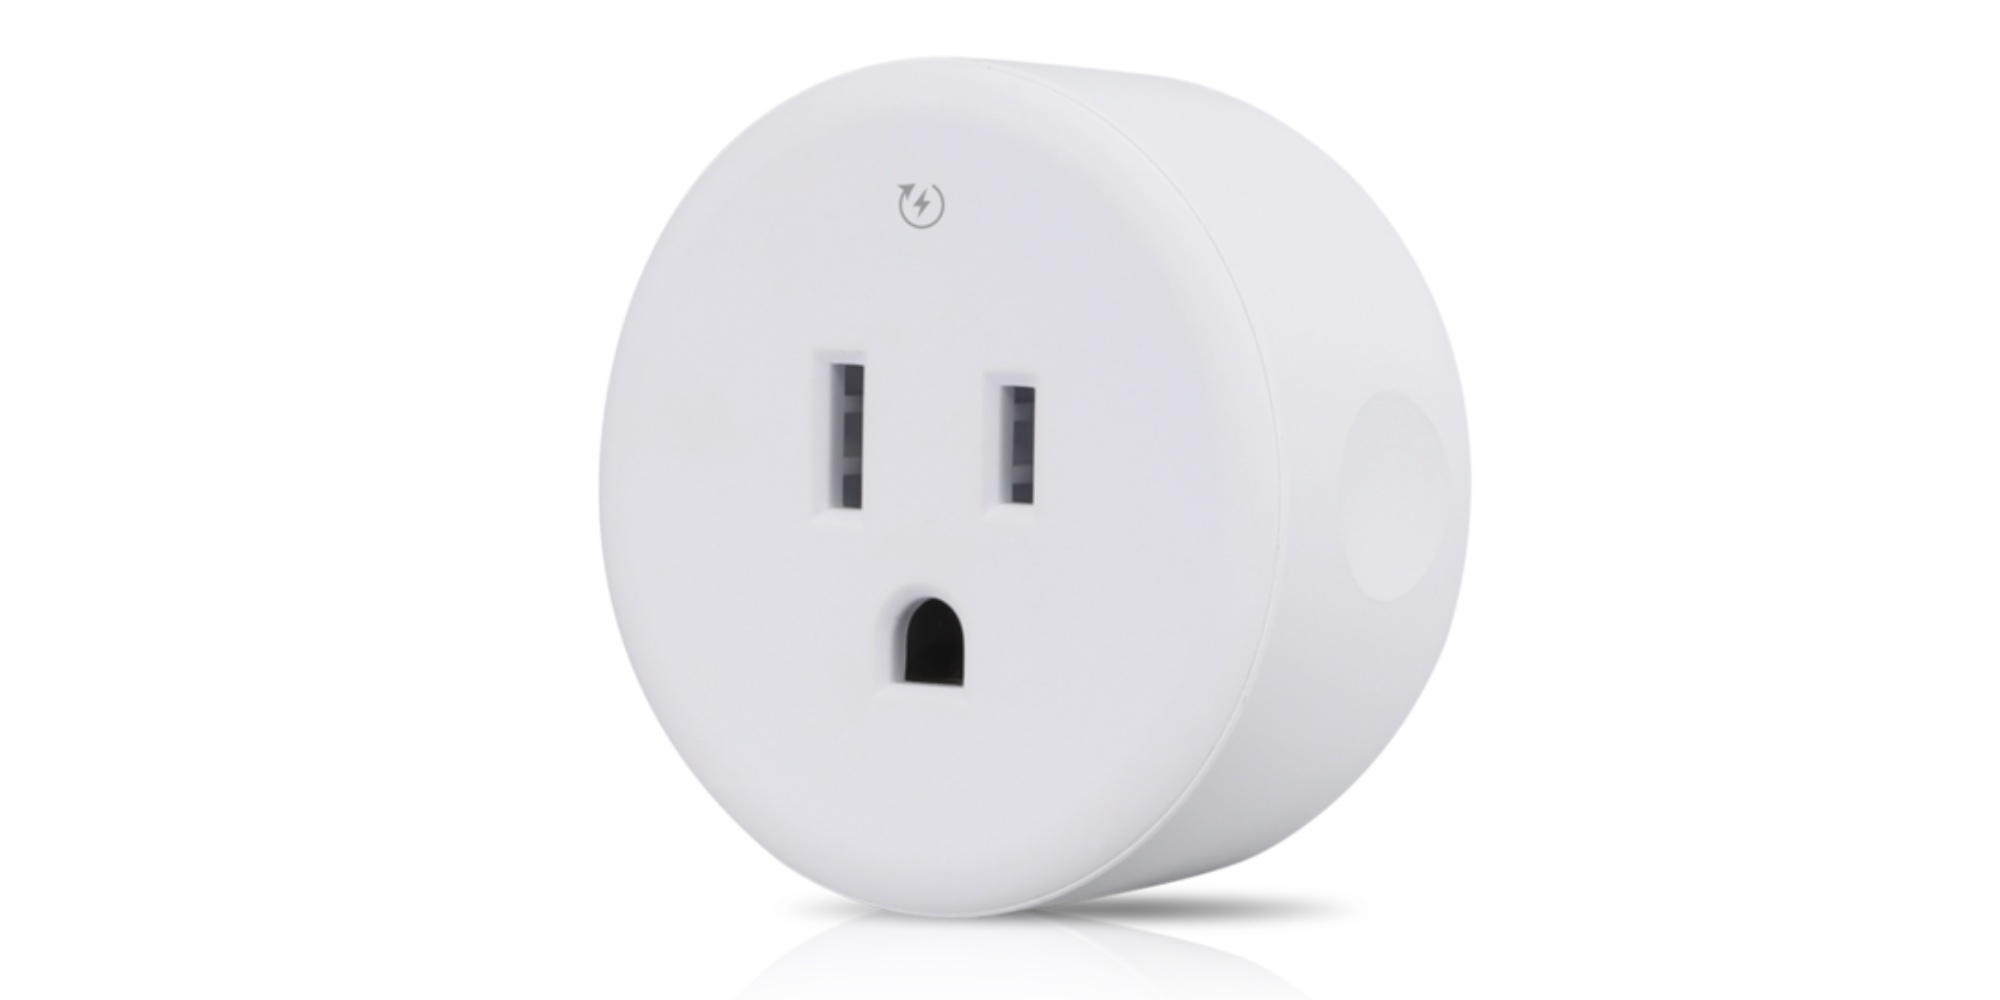 Ubiquiti launches new UniFi Smart Plug to tackle network connectivity issues